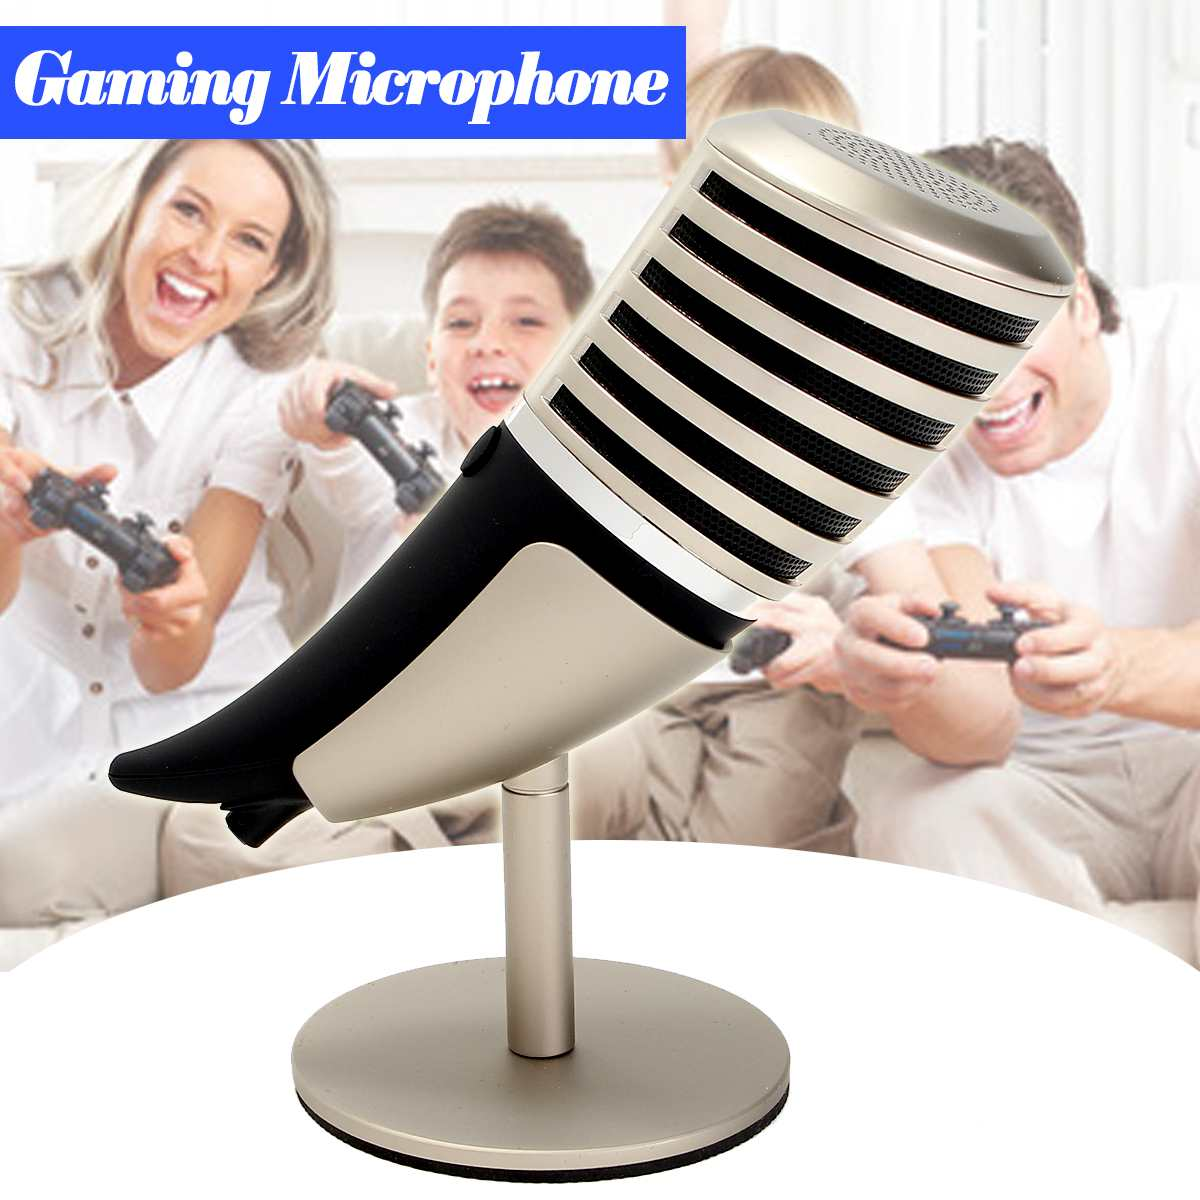 Pro Desktop Gaming Microphone Stand With Holder Portable Audio Video Microphones for Computer Laptop Mic